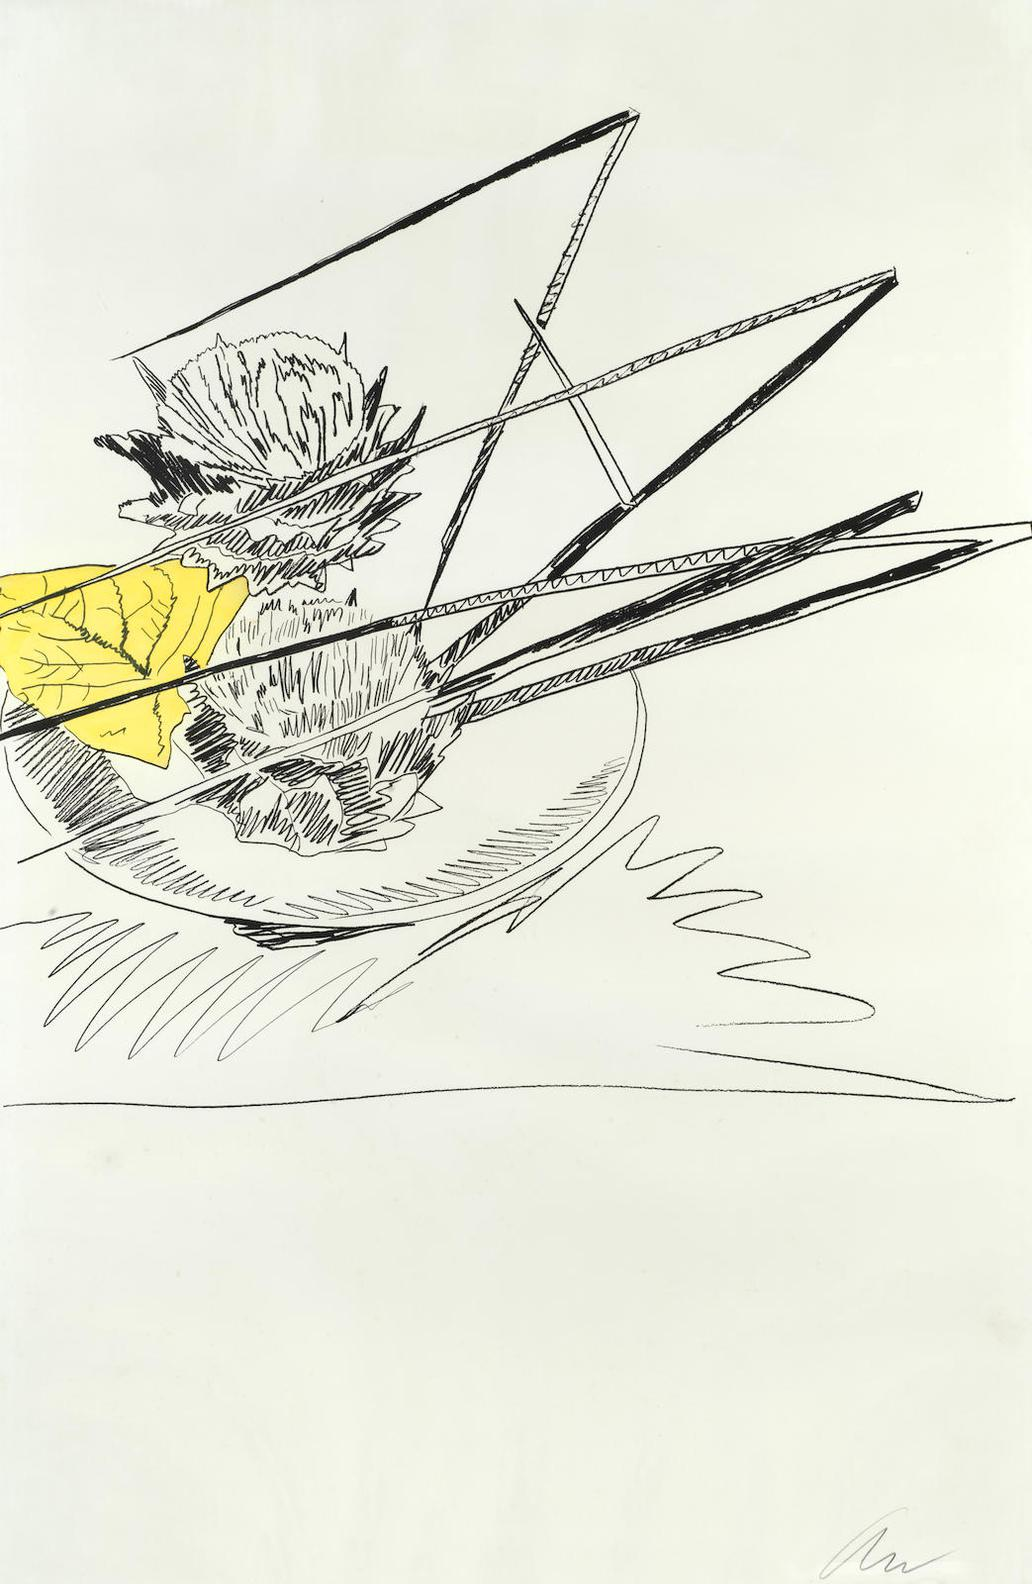 Andy Warhol-One Plate, From Flowers (Feldman & Schellmann II.116)-1974